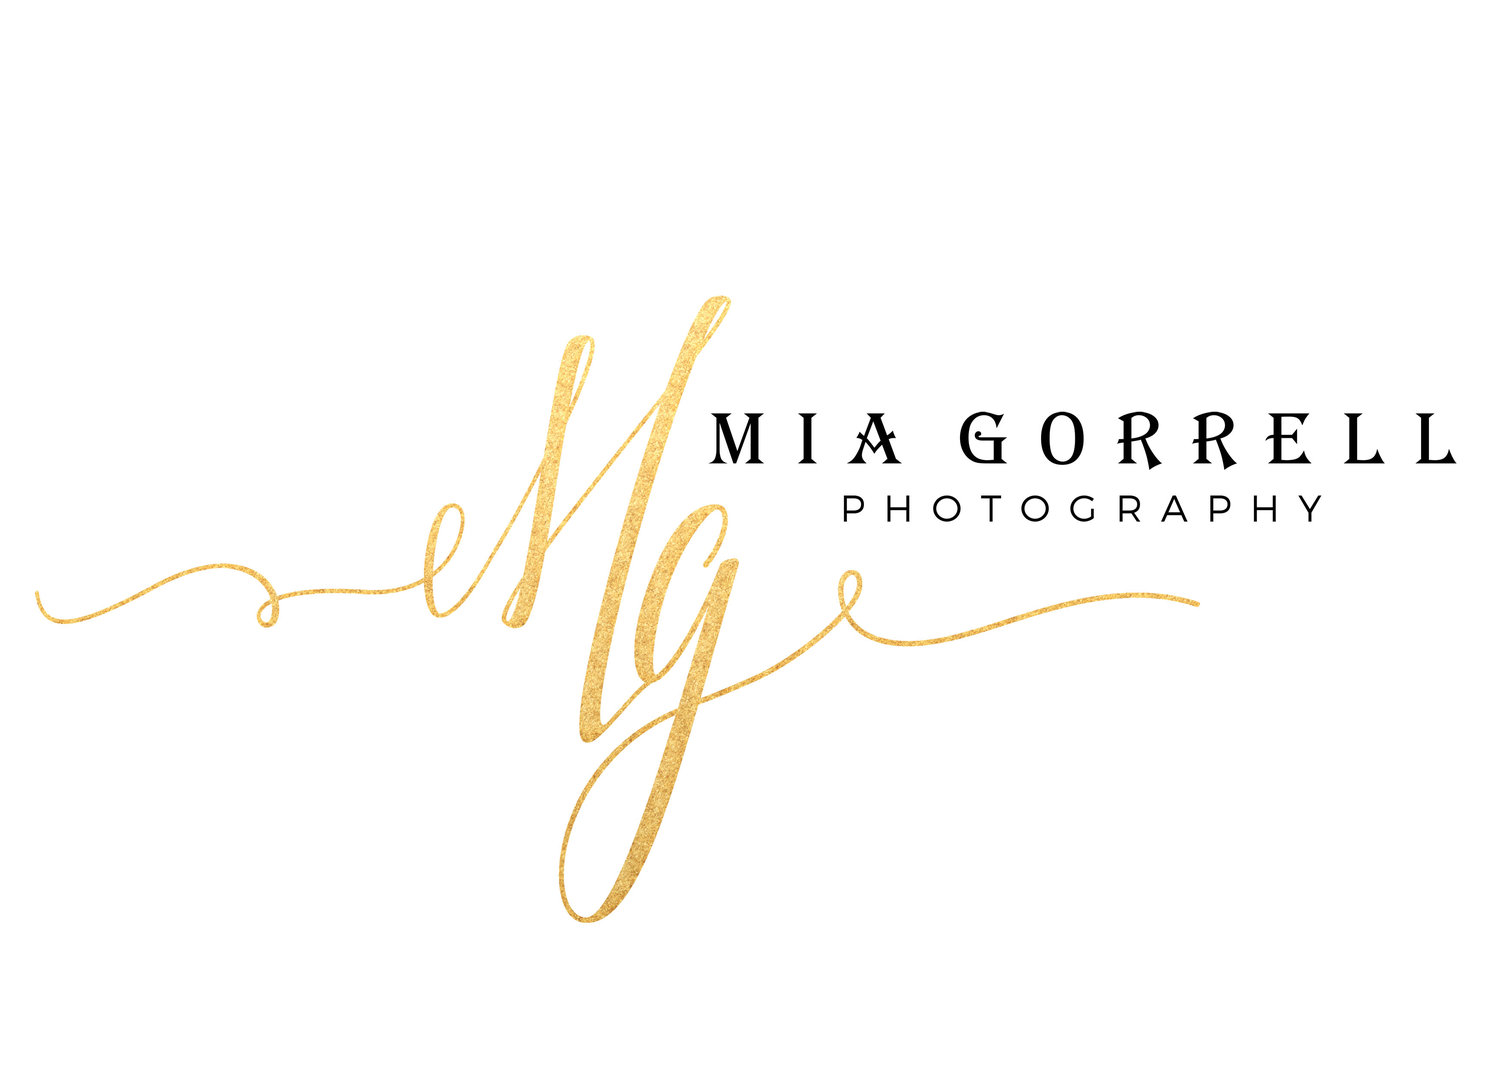 Mia Gorrell Photography